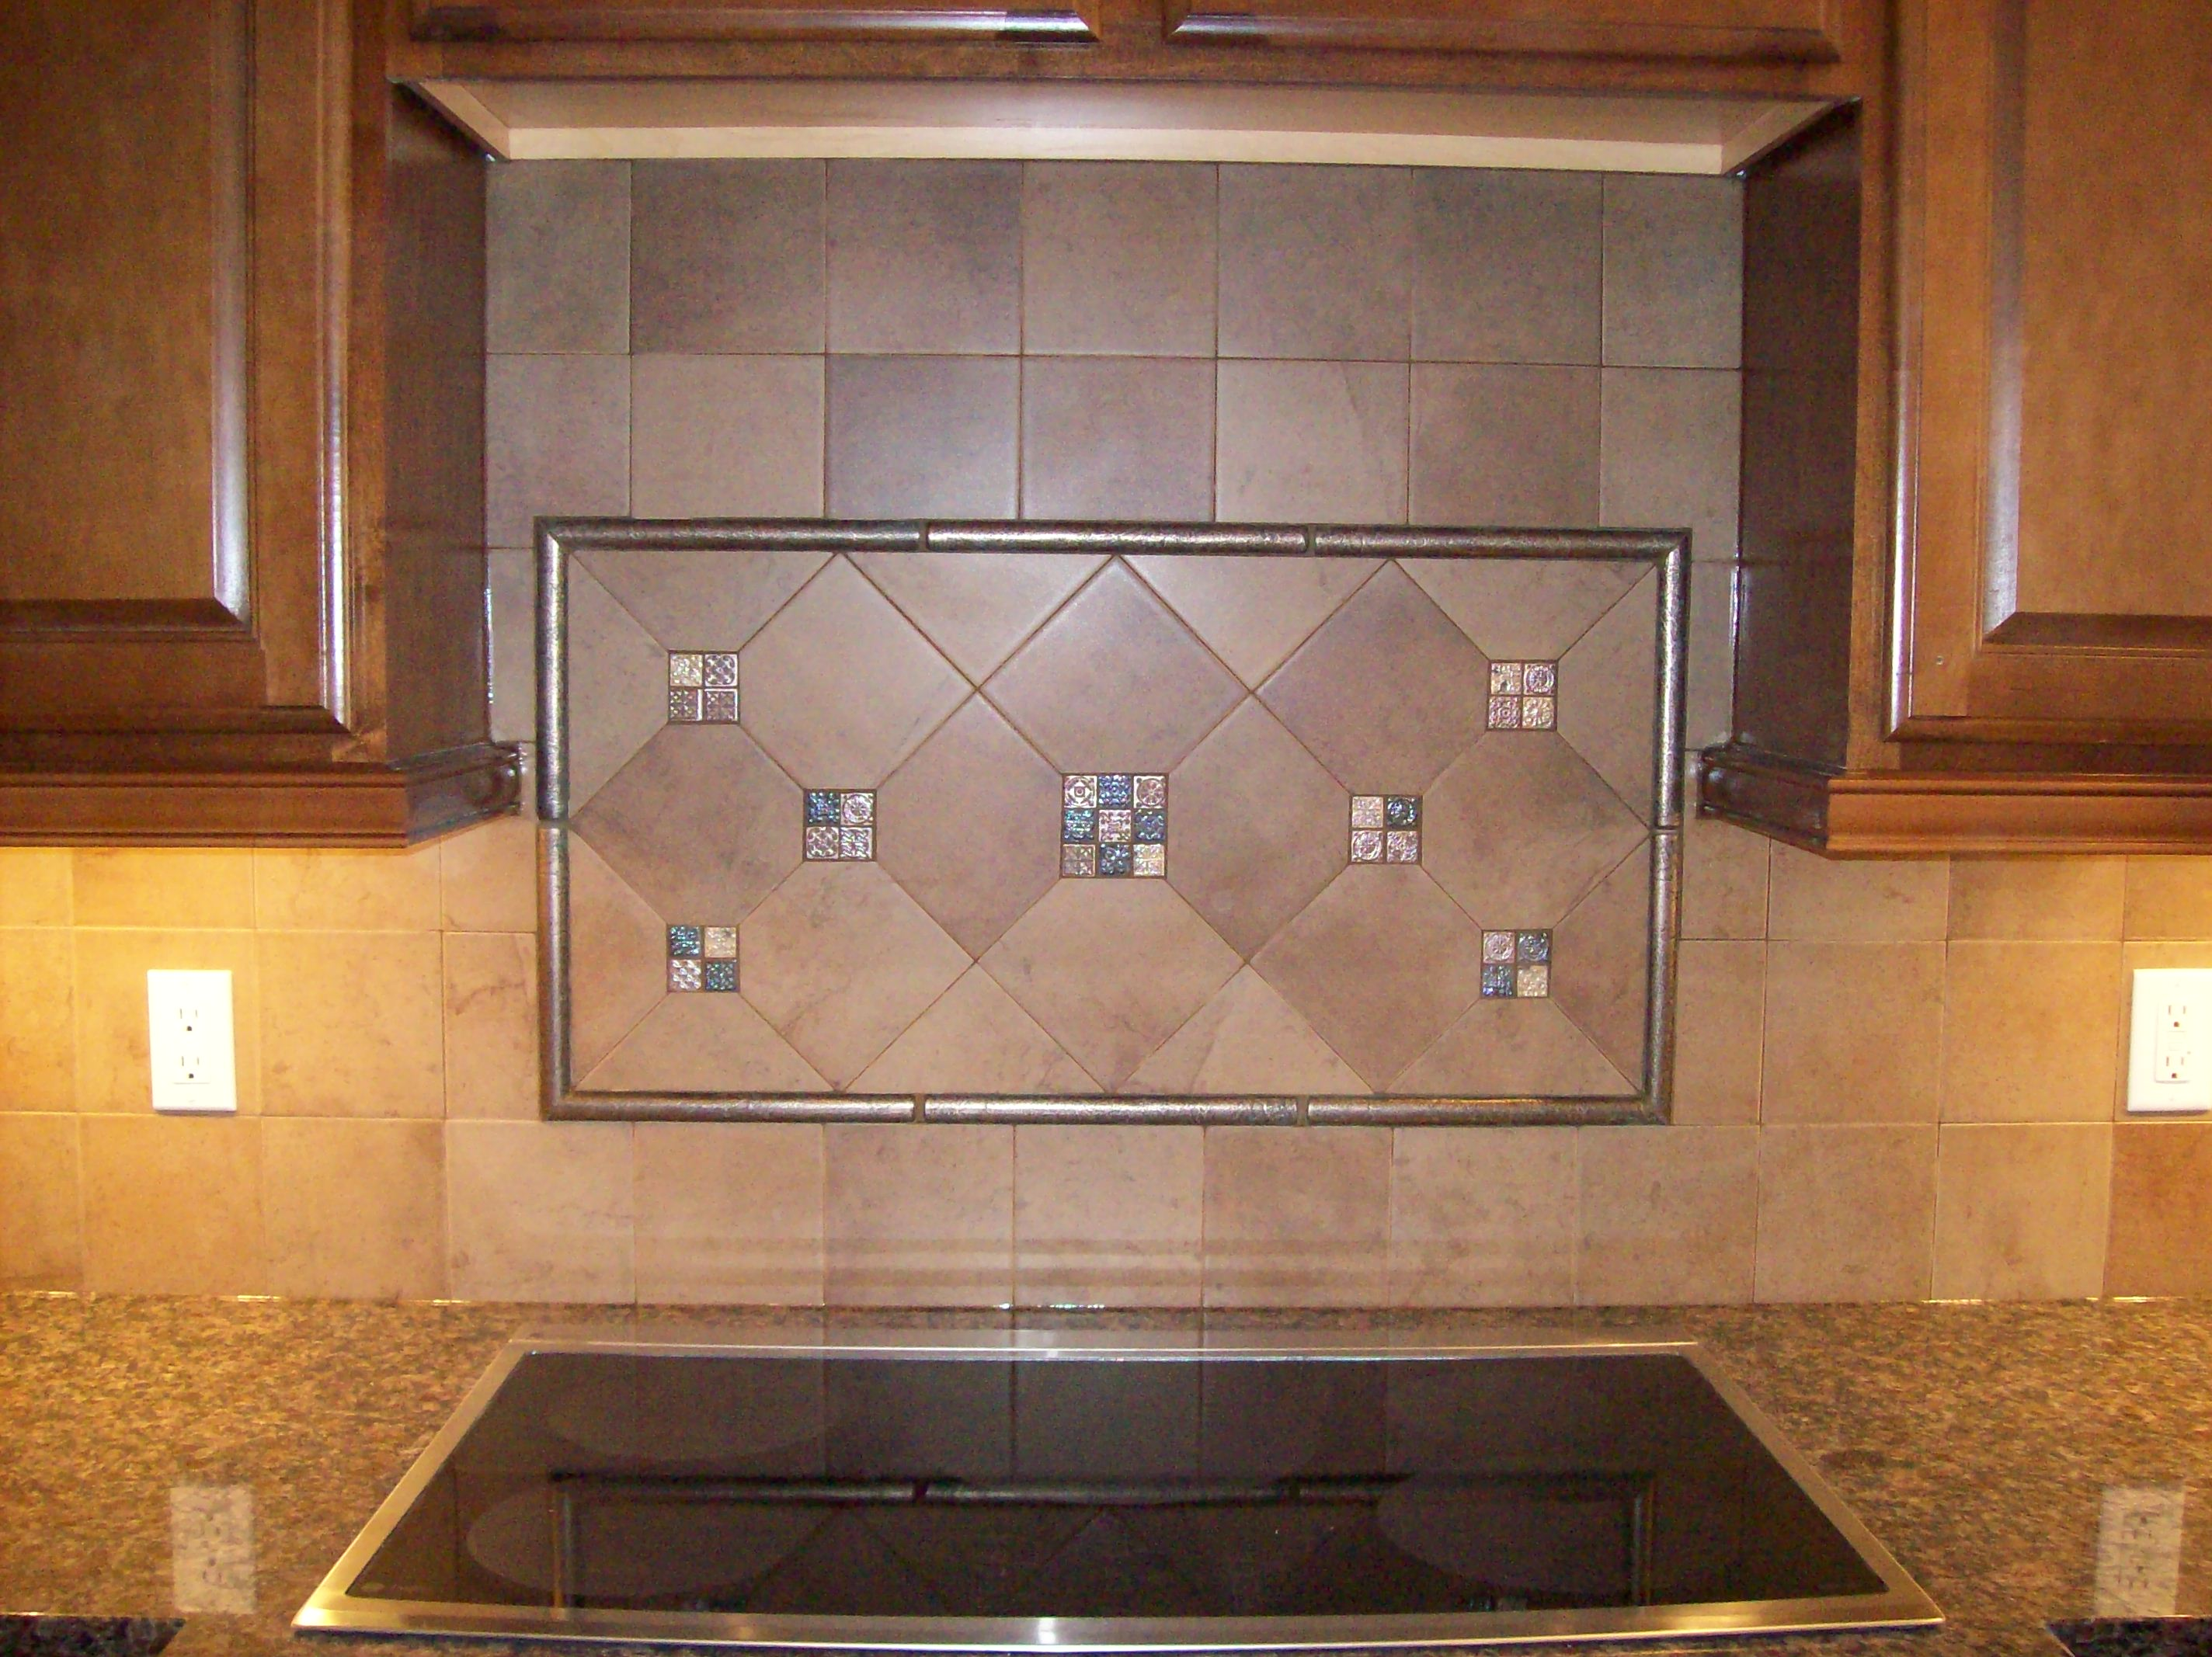 Beckoning Ceramic Back Splash Tile Also Granite Top Plus Induction Stove